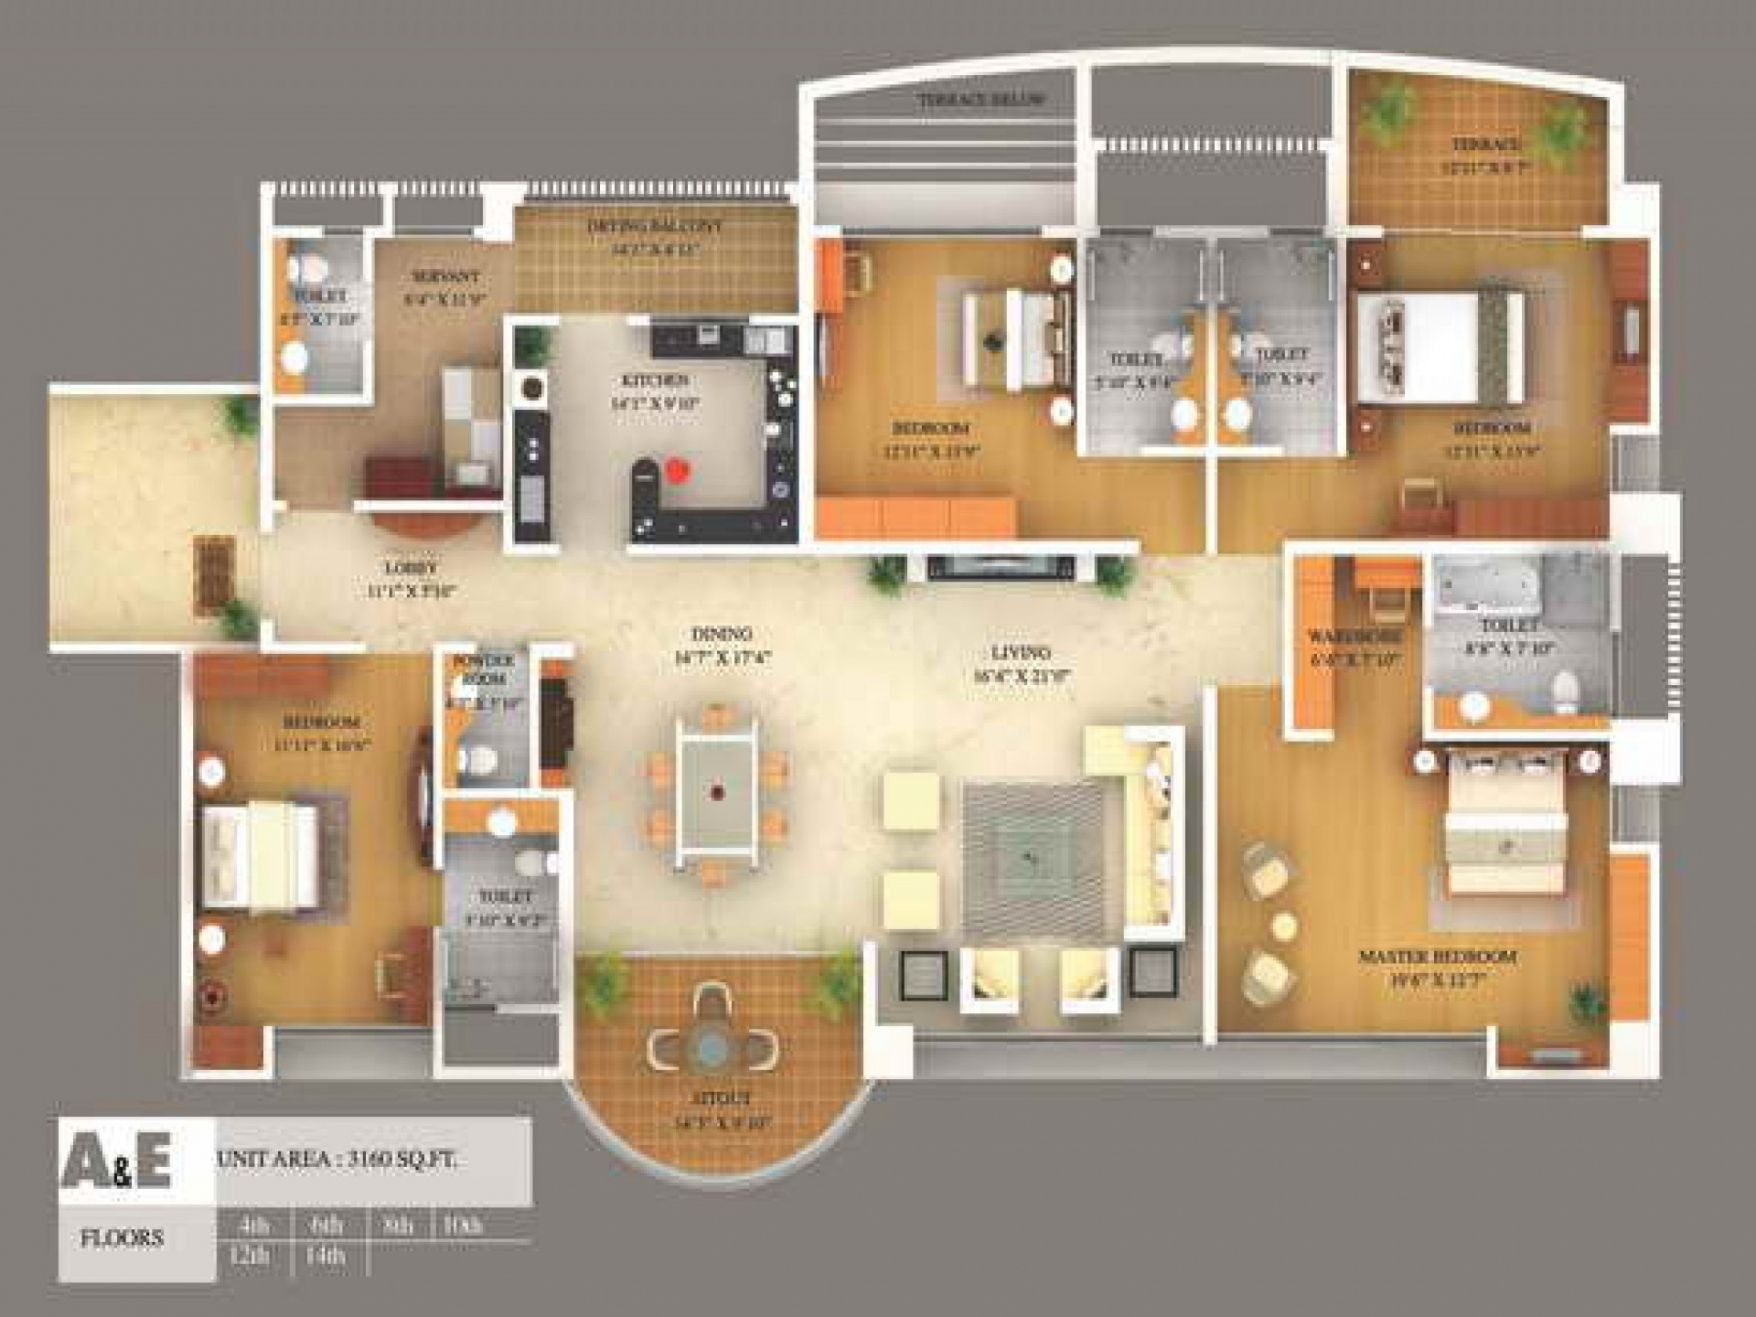 Awesome Mac House Design Software Check More At Http Www Jnnsysy Com Mac House Design Software Online Home Design Floor Plan Design Home Design Software